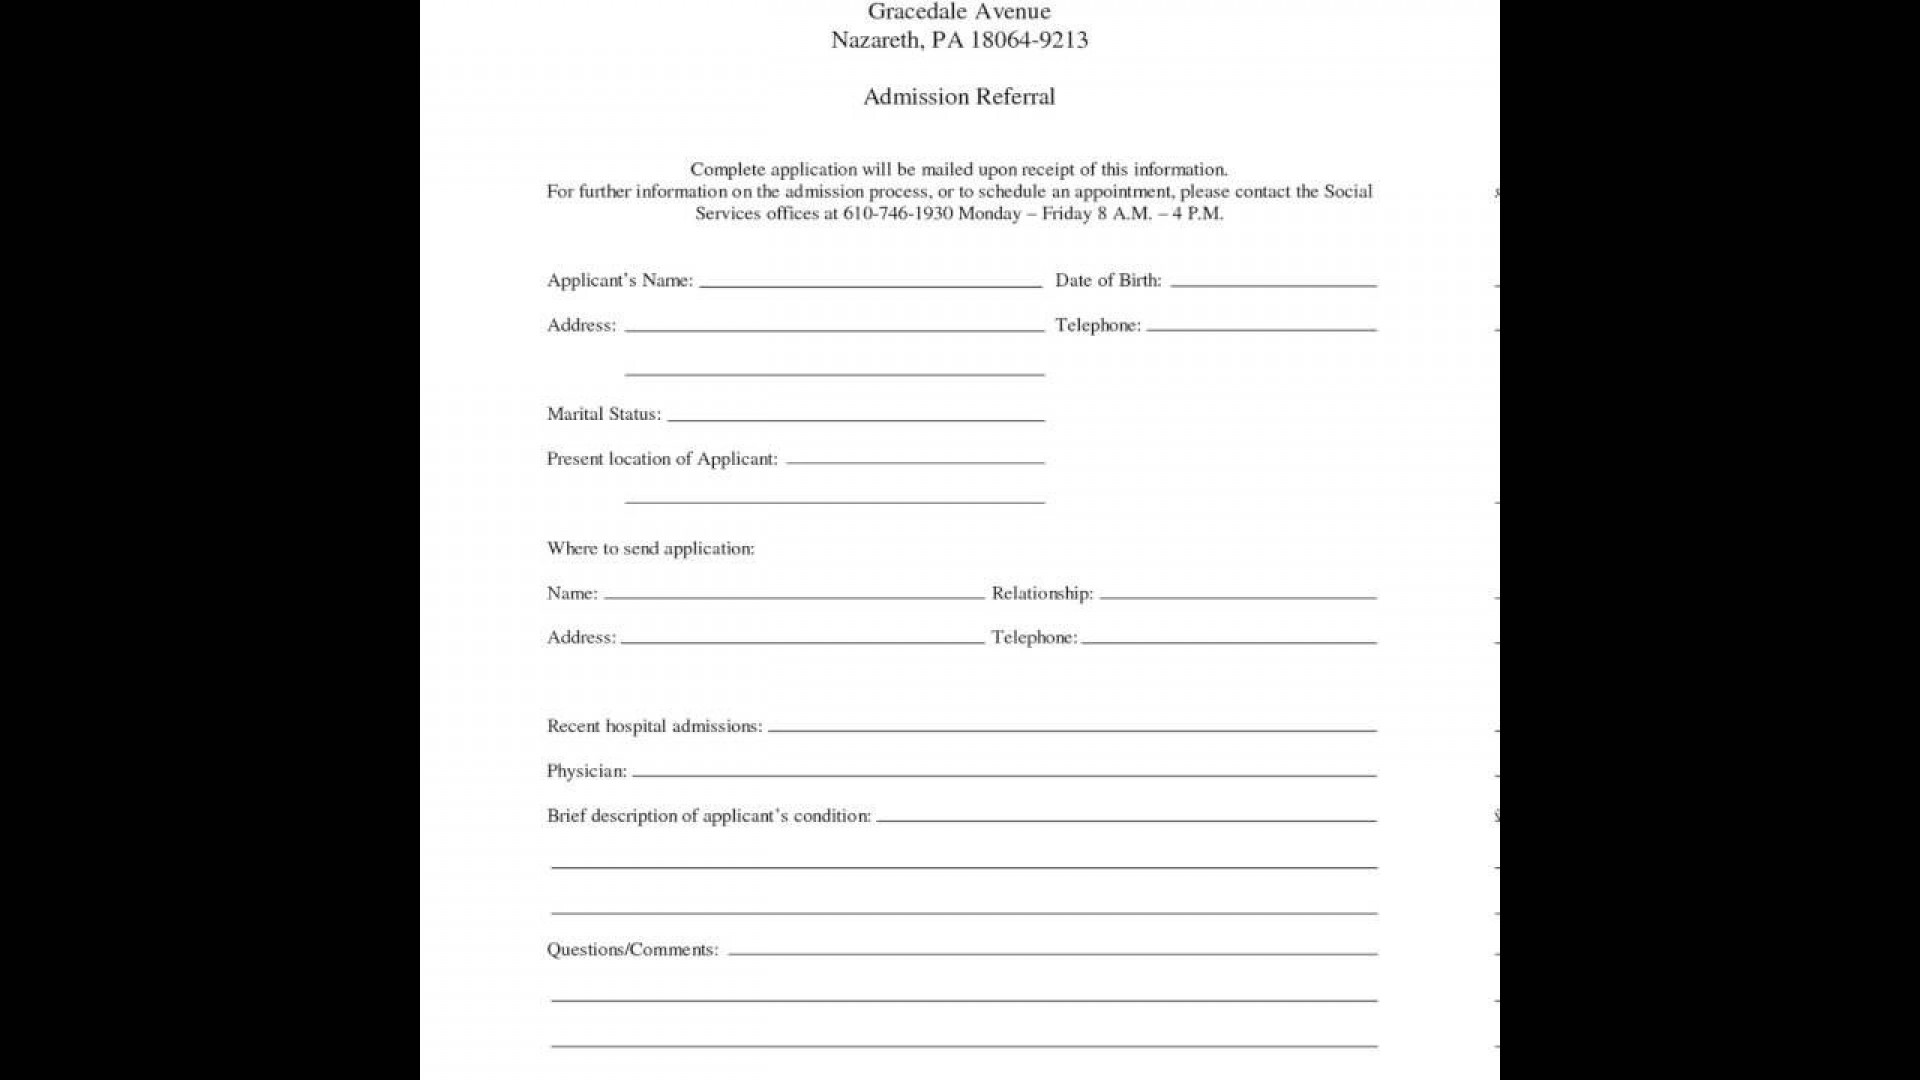 000 Awesome Hospital Discharge Form Template Highest Quality  Patient1920